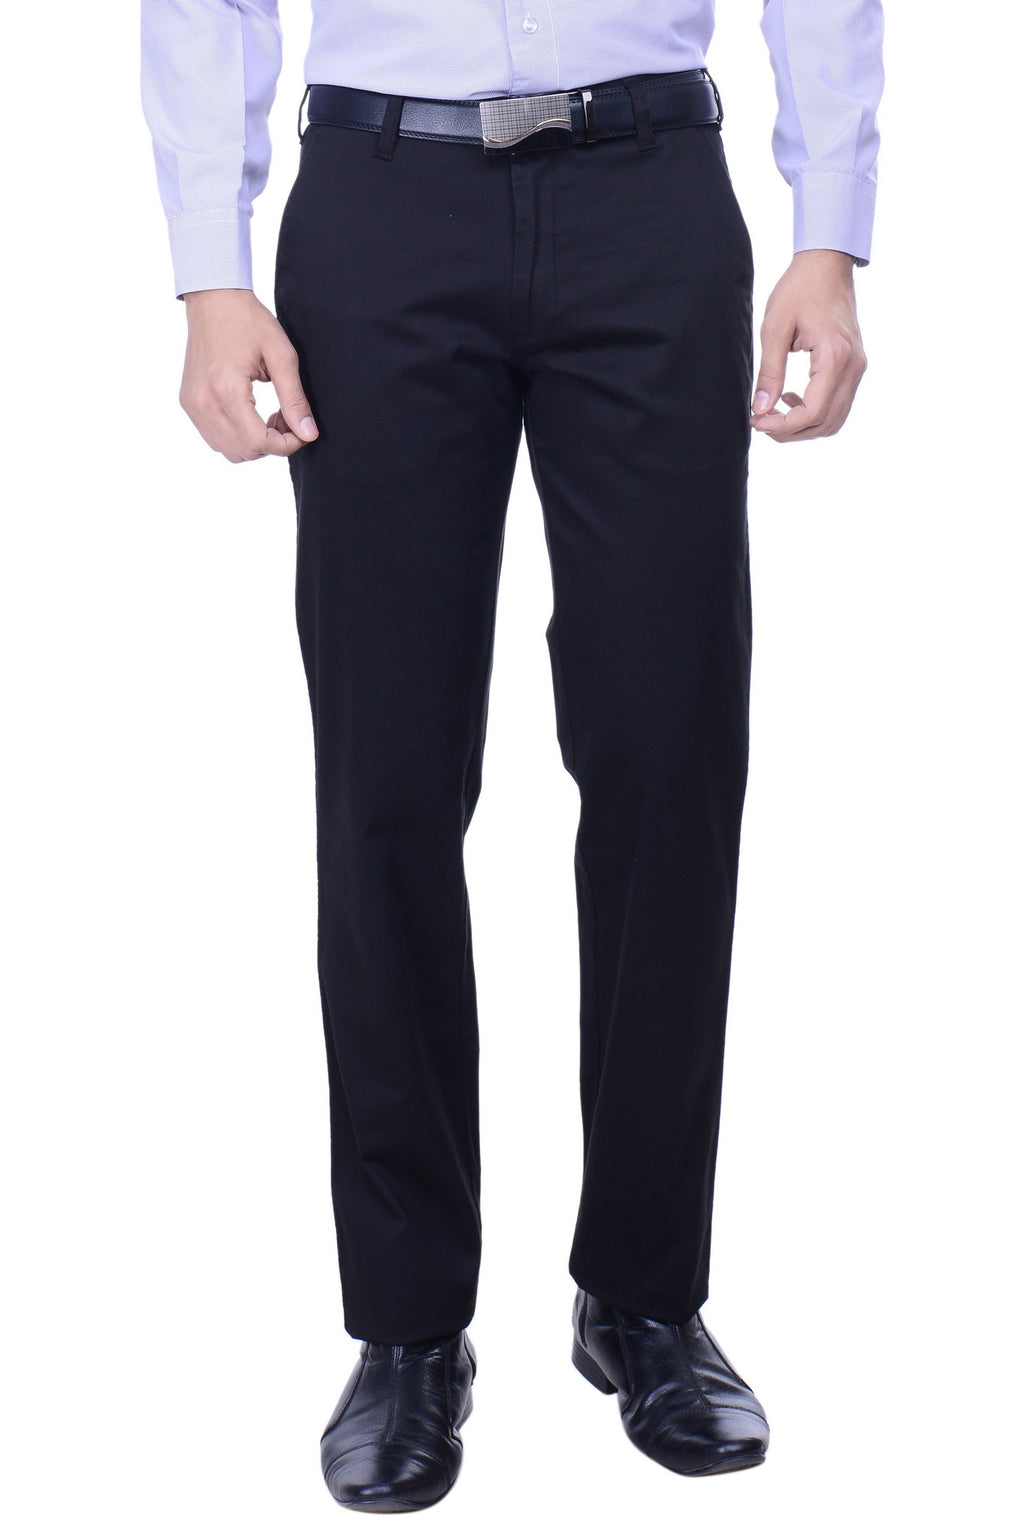 Hoffmen Slim Fit Flat Front  Men's Black Trousers SSG3005